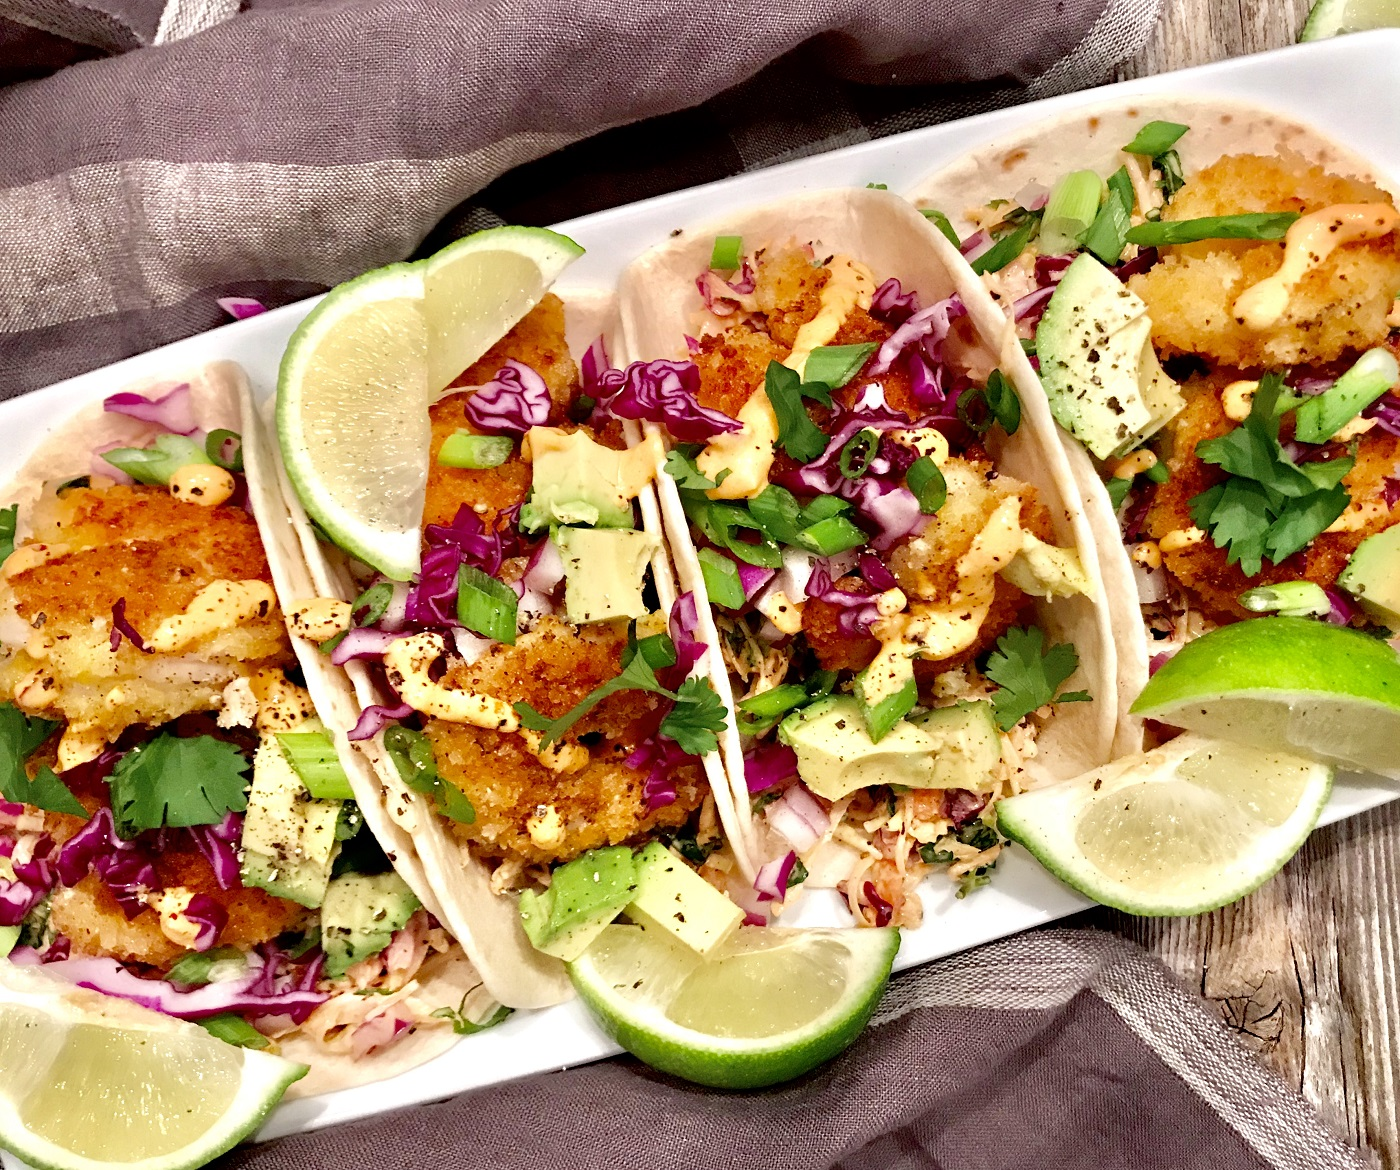 An image of tacos made by Taste & Sabor, a restaurant with pickup or delivery in the Bronx, NY area (Kingsbridge)